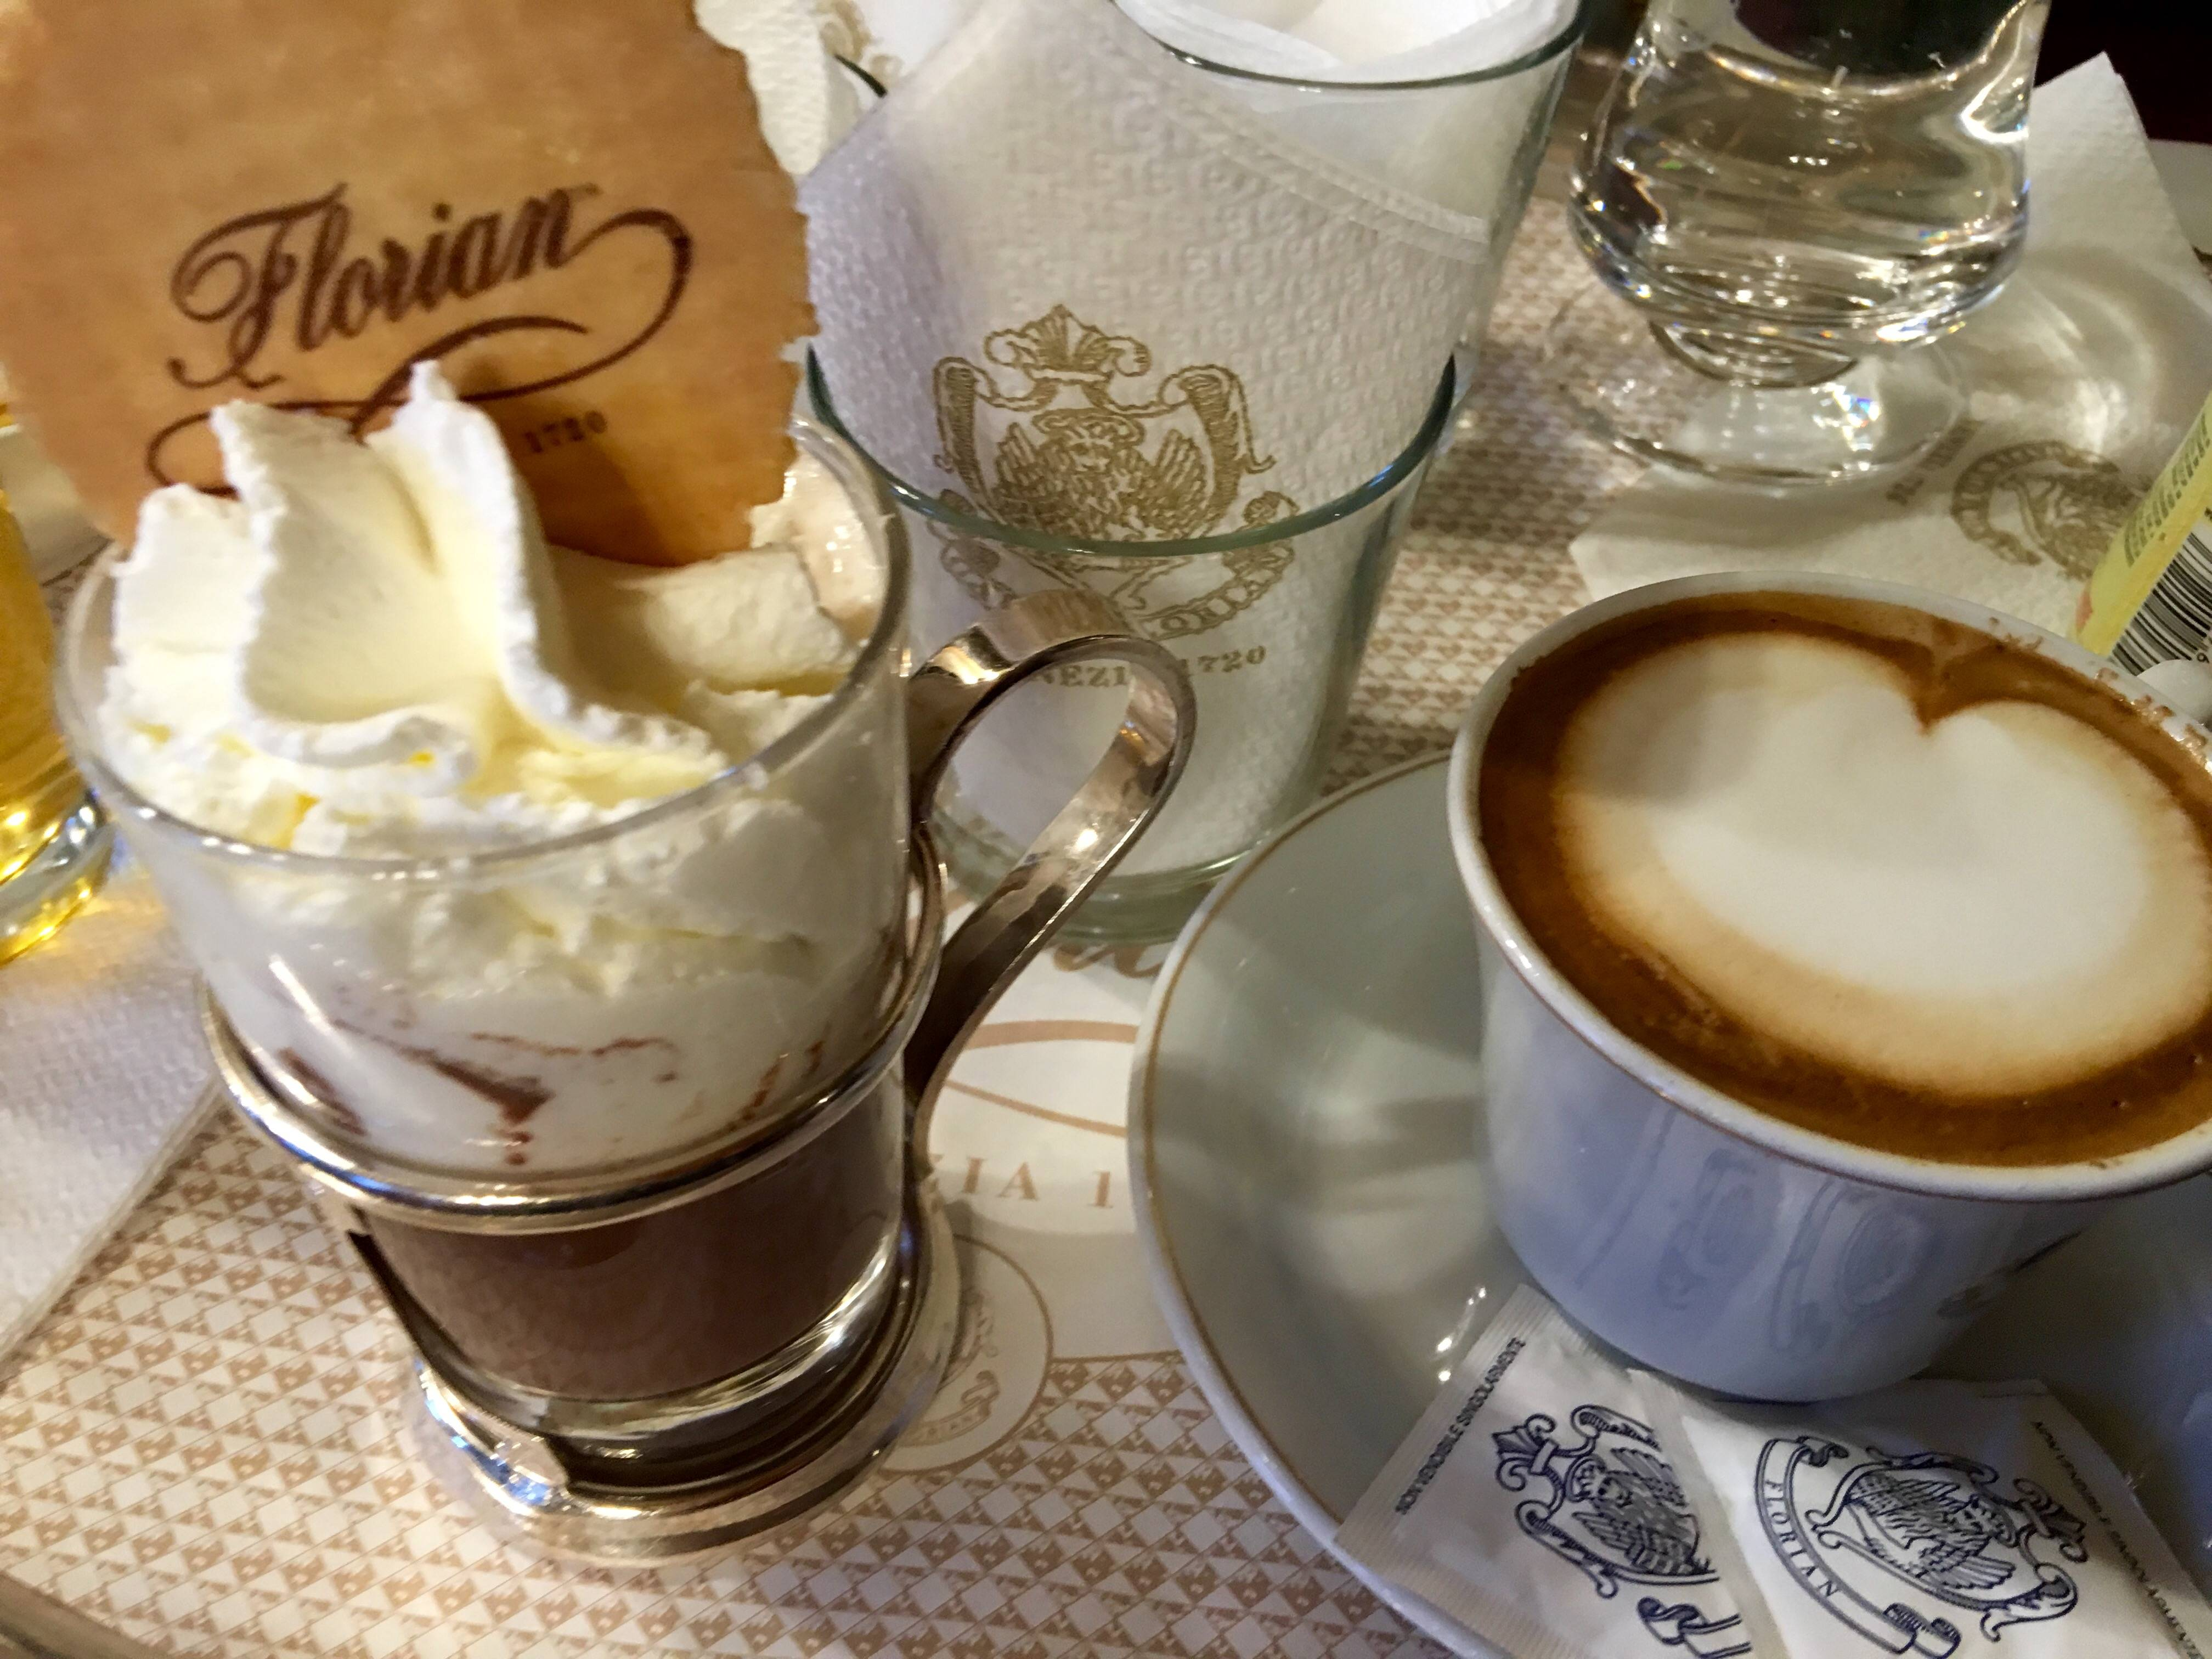 Photo 1: Café Florian - Un café mythique